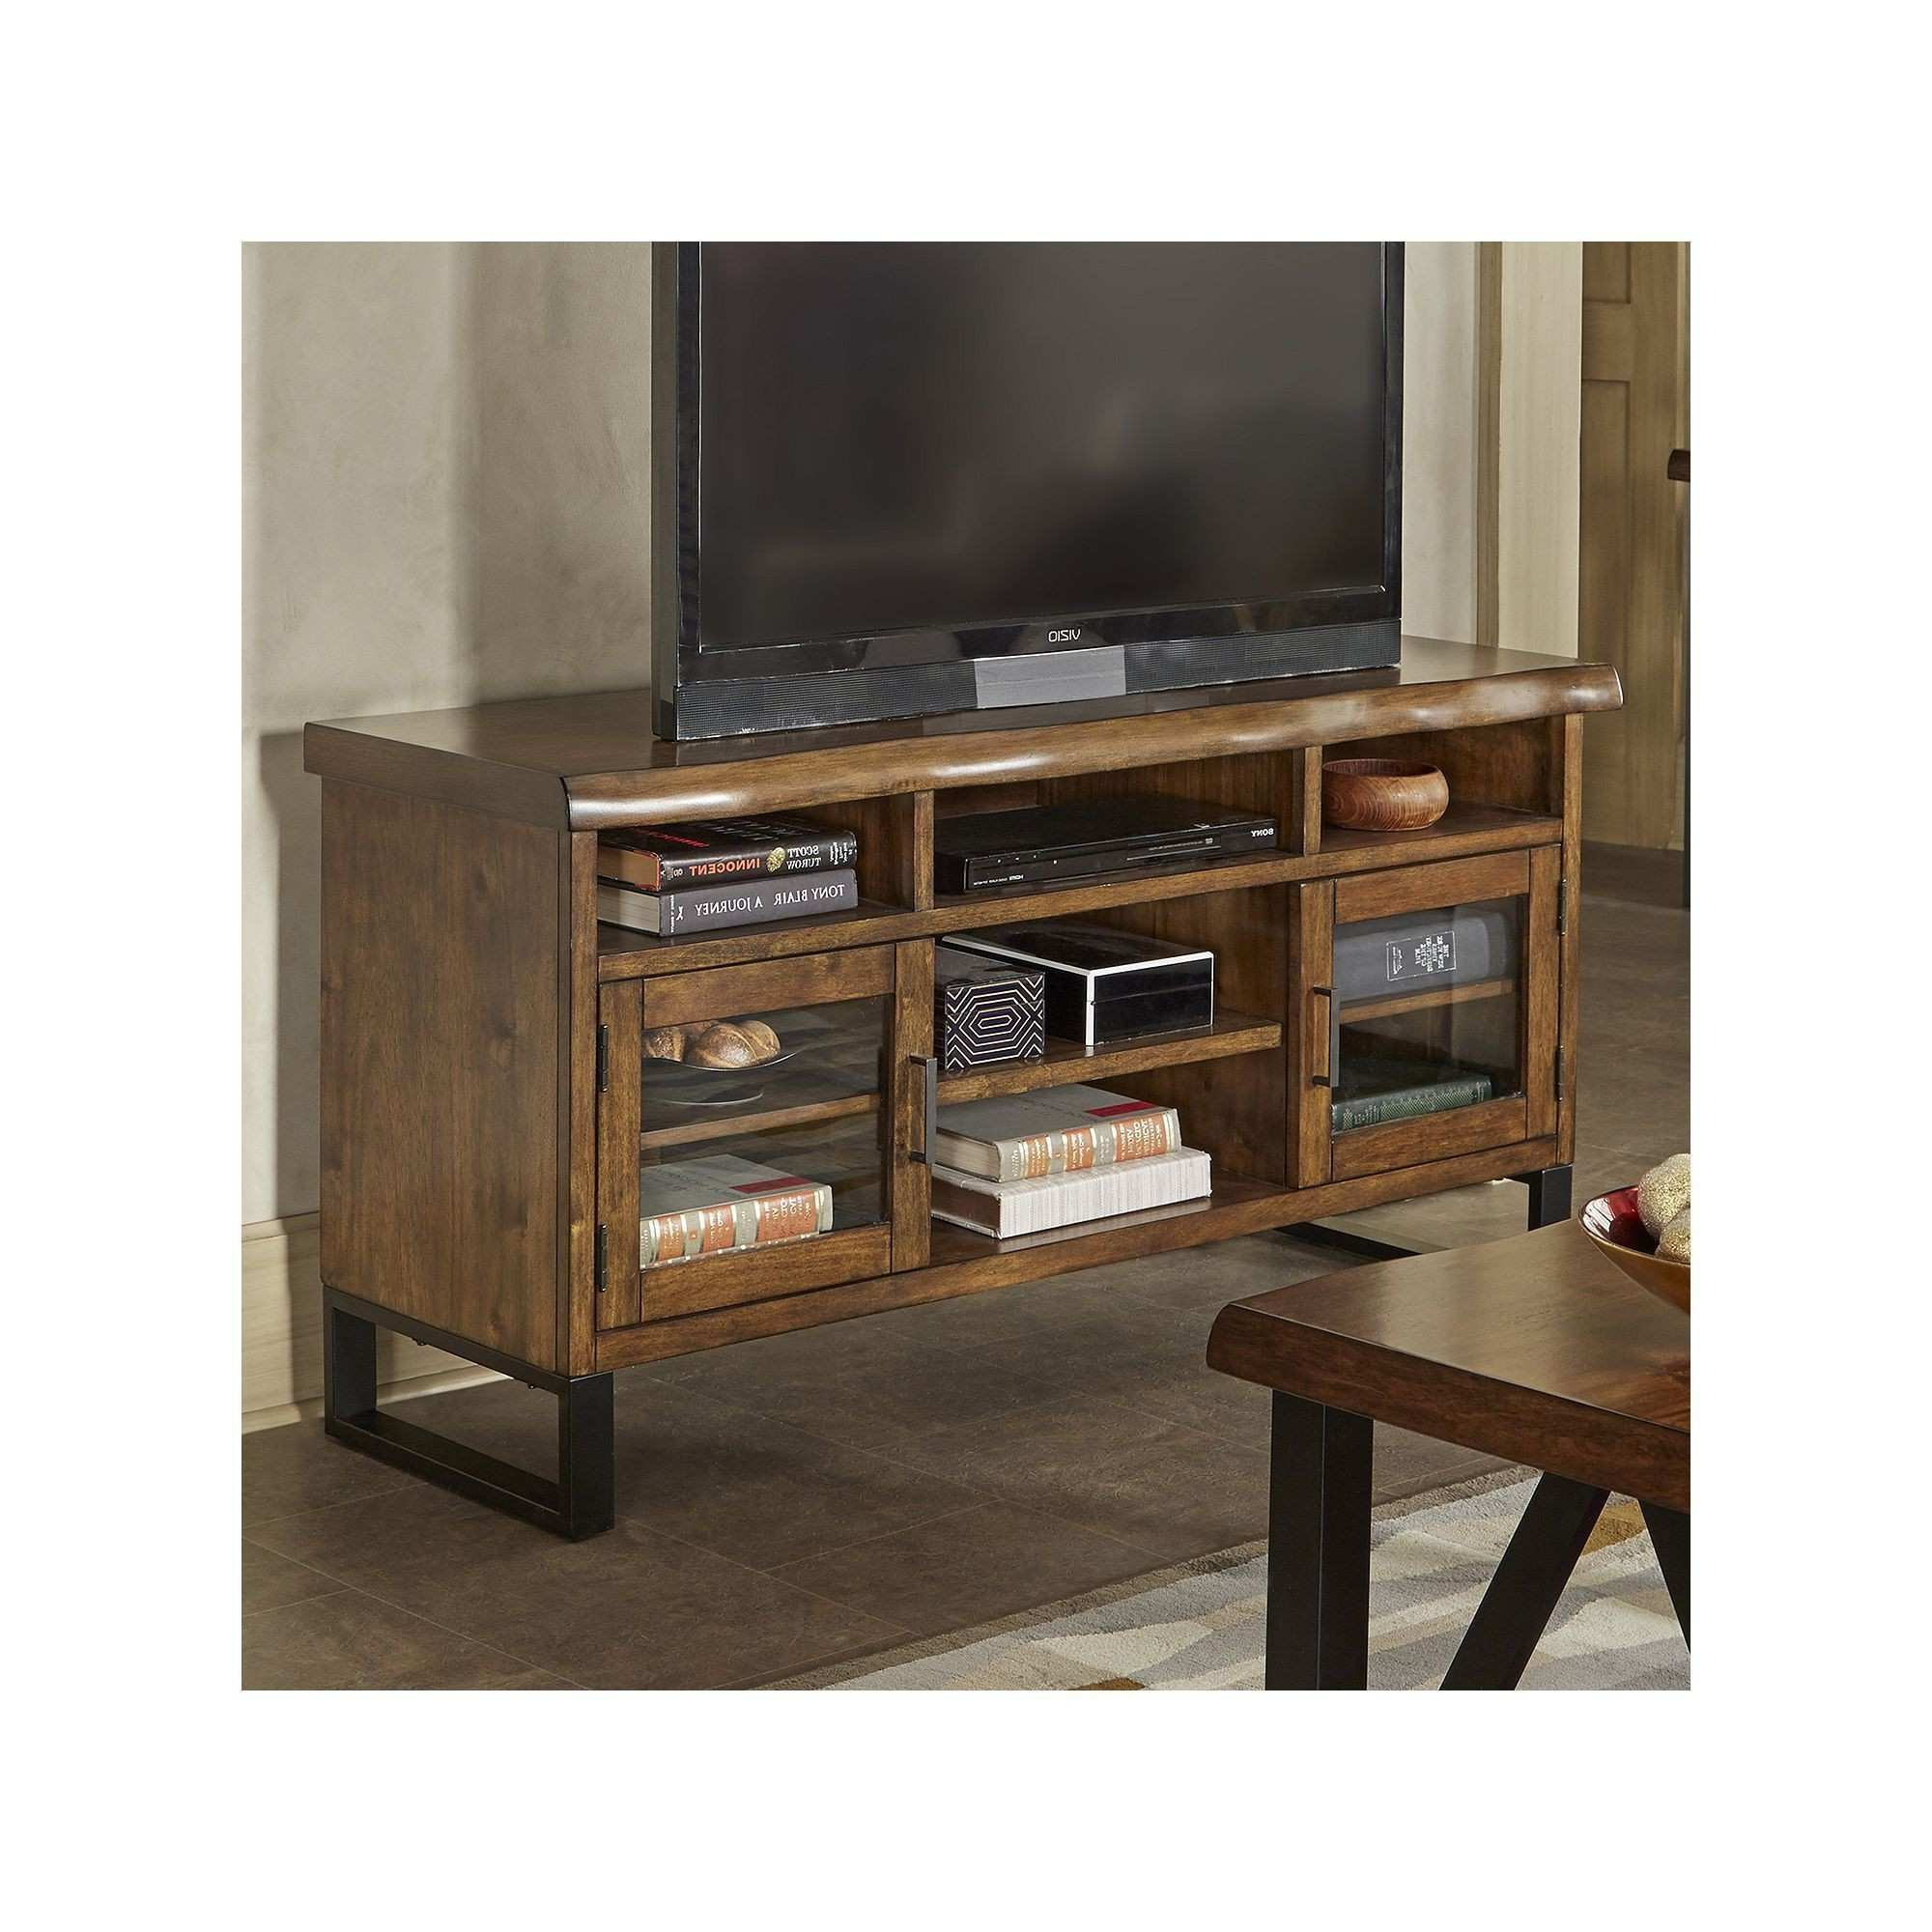 2018 Cheap Rustic Tv Stands Inside Home Design & Gardening: Exquisite Rustic Pine Tv Stand As Cheap (Gallery 17 of 20)